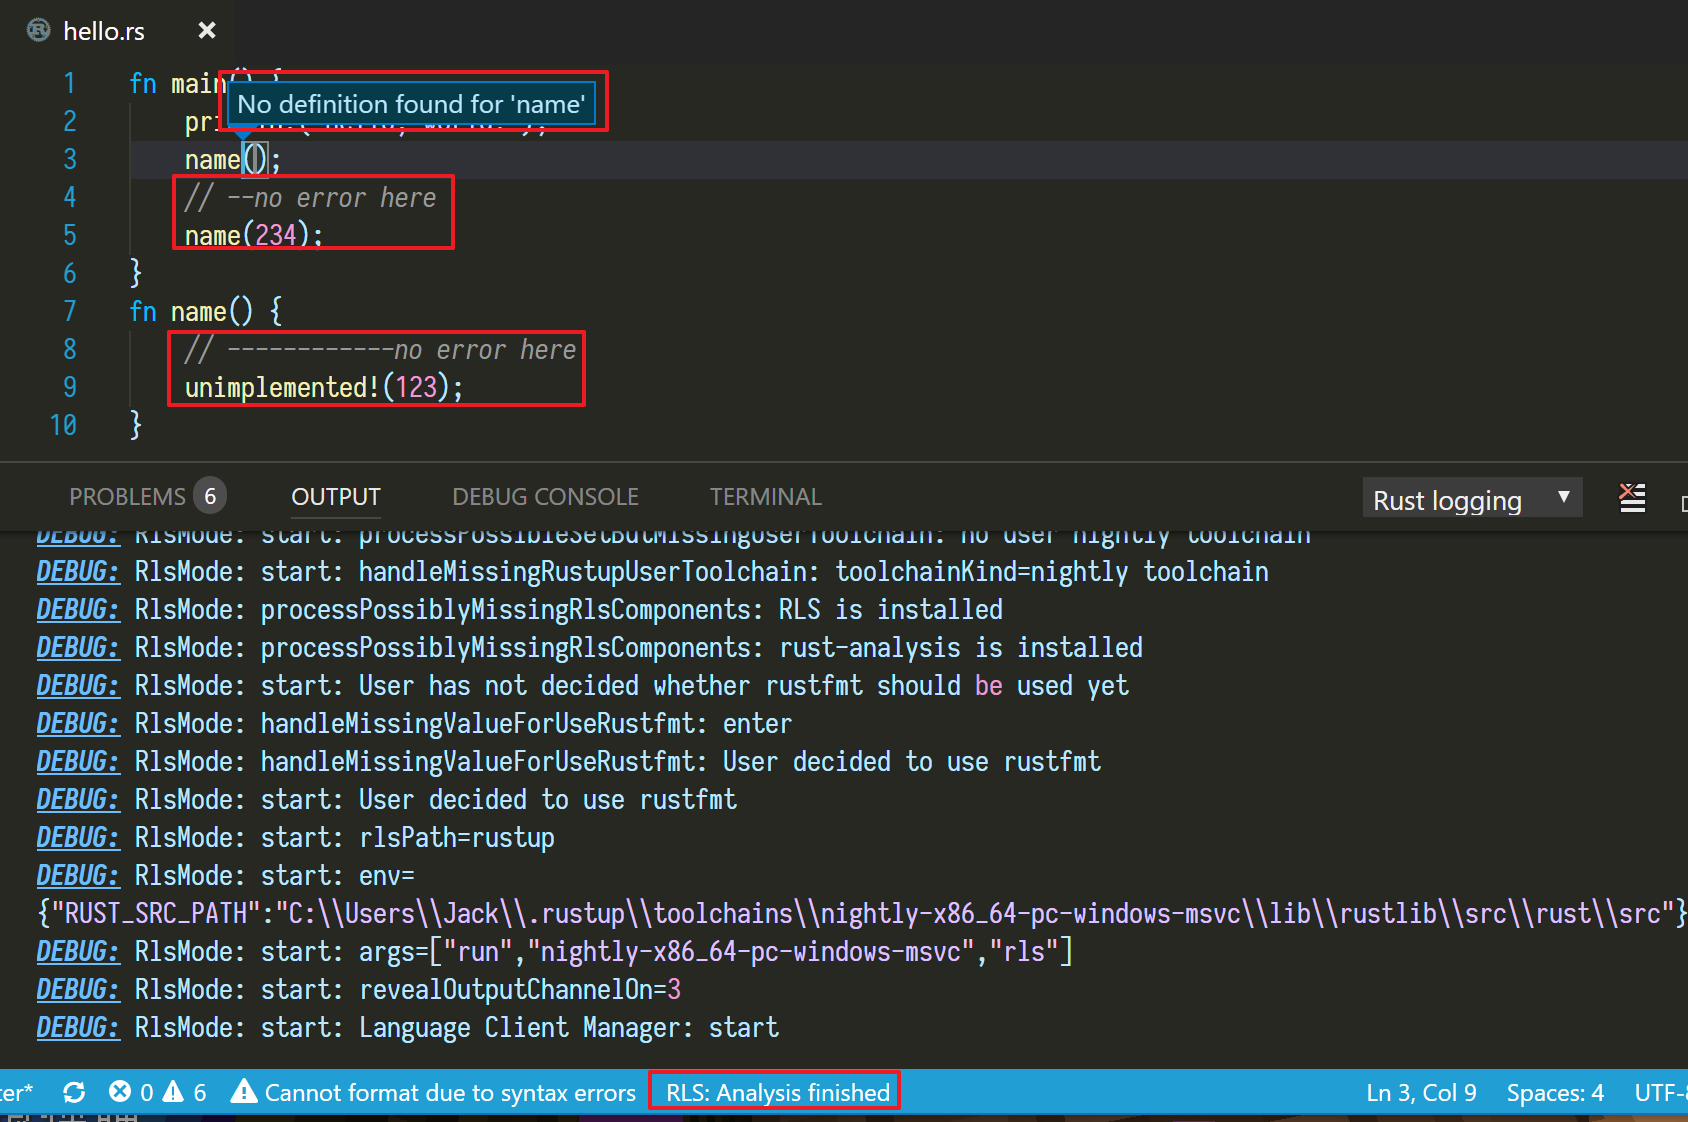 Unable to find any definitions in VSCode · Issue #674 · rust-lang